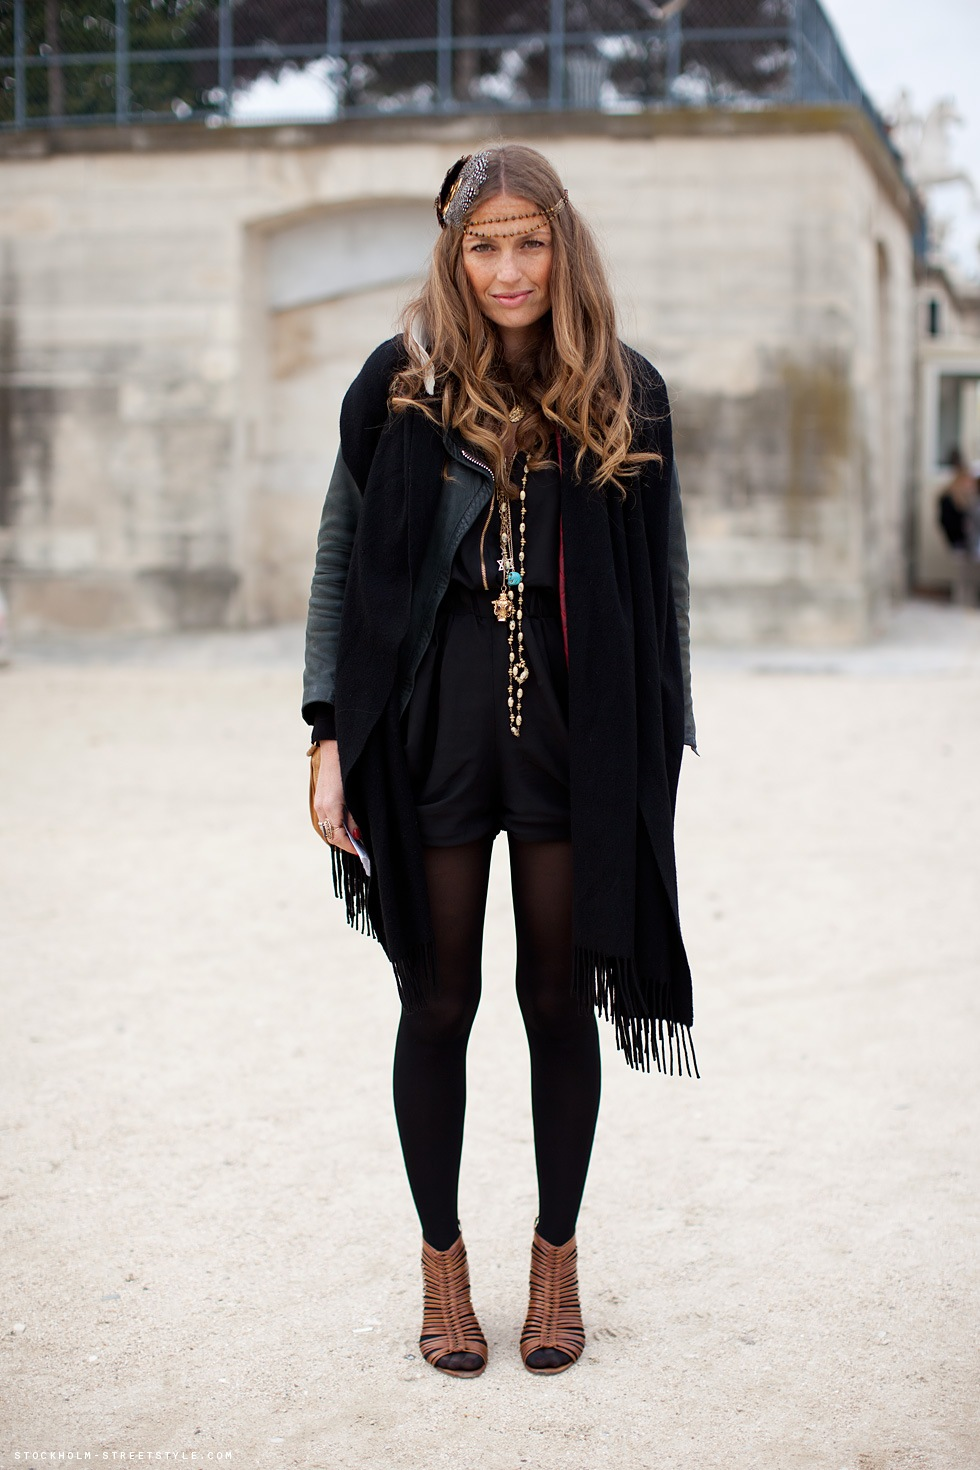 Brittany Fuson Black tights + tan shoes